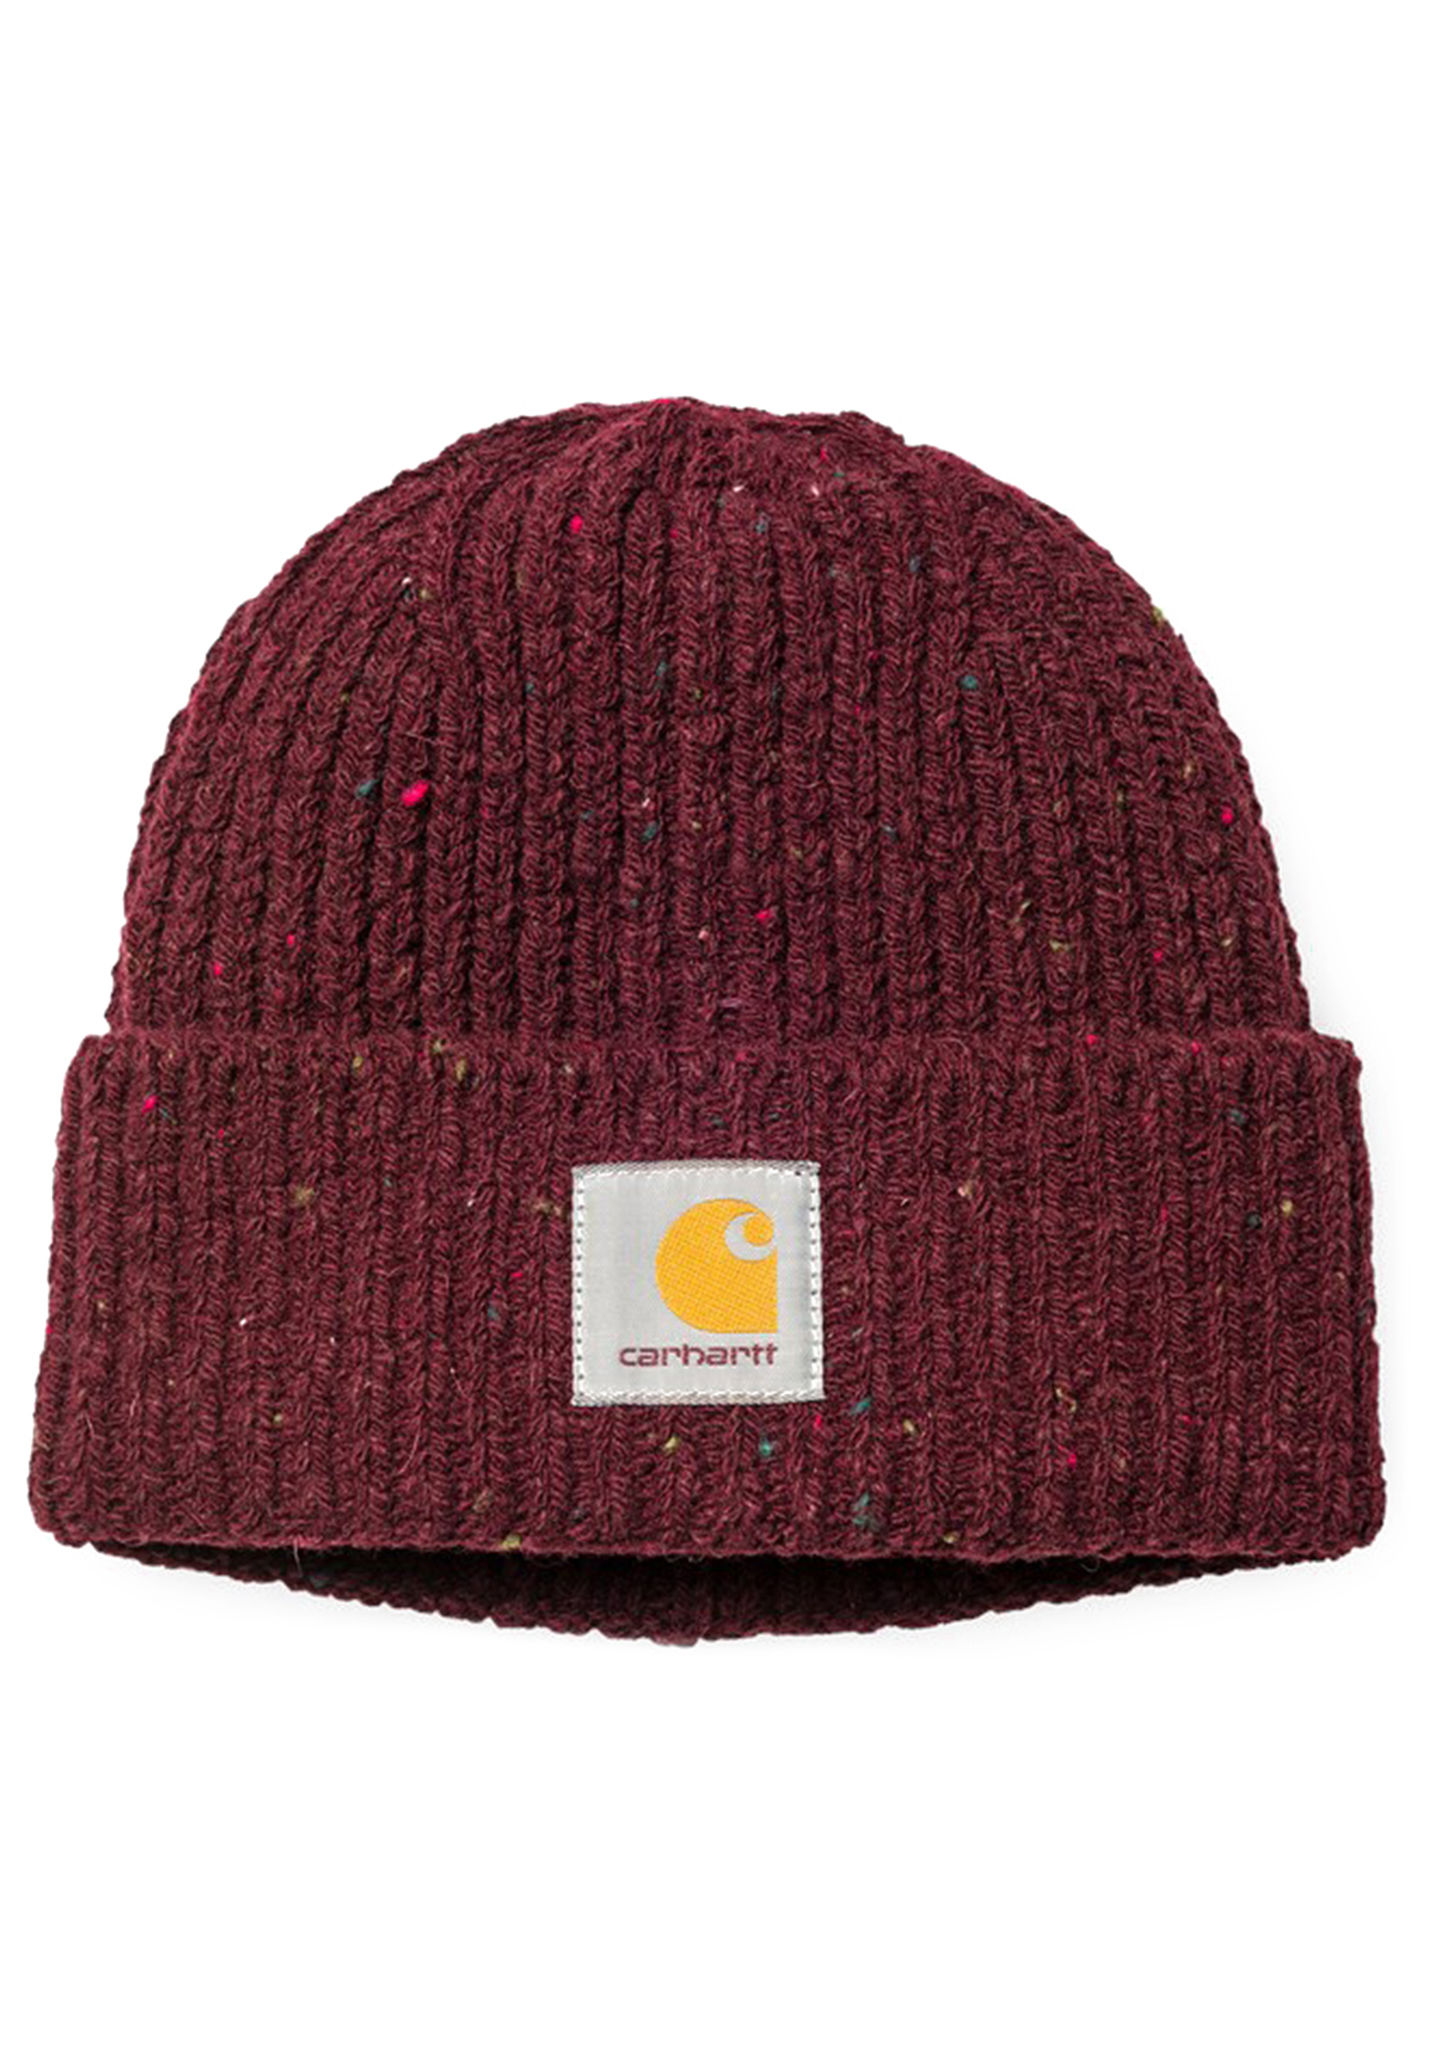 68041d9f533 carhartt WIP Anglistic - Beanie for Men - Red - Planet Sports